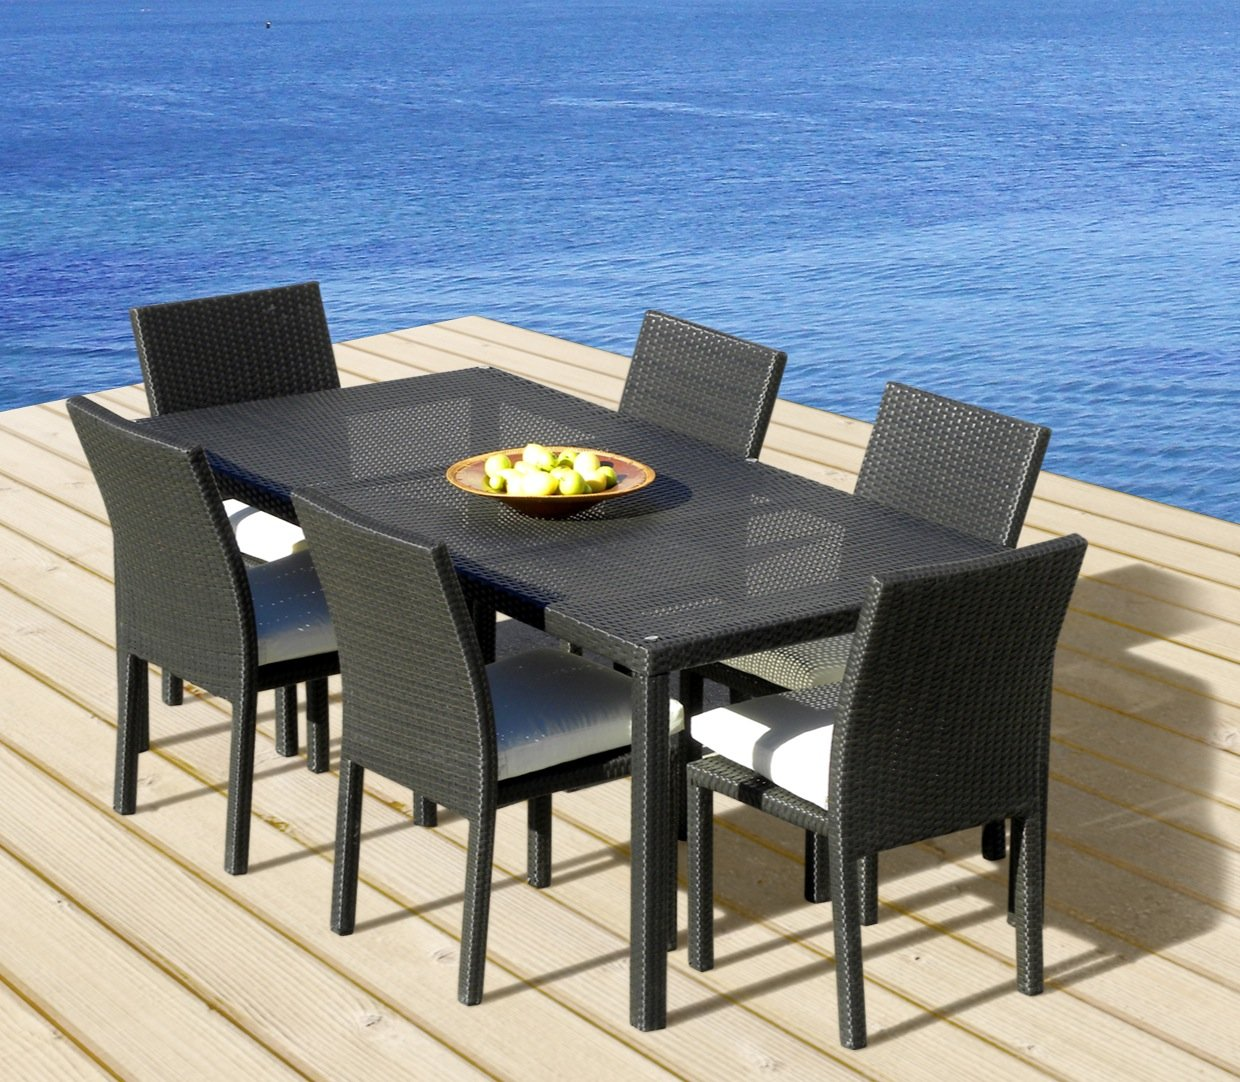 Amazon.com : Outdoor Patio Wicker Furniture New All Weather Resin 7 Piece  Dining Table U0026 Chair Set : Garden U0026 Outdoor